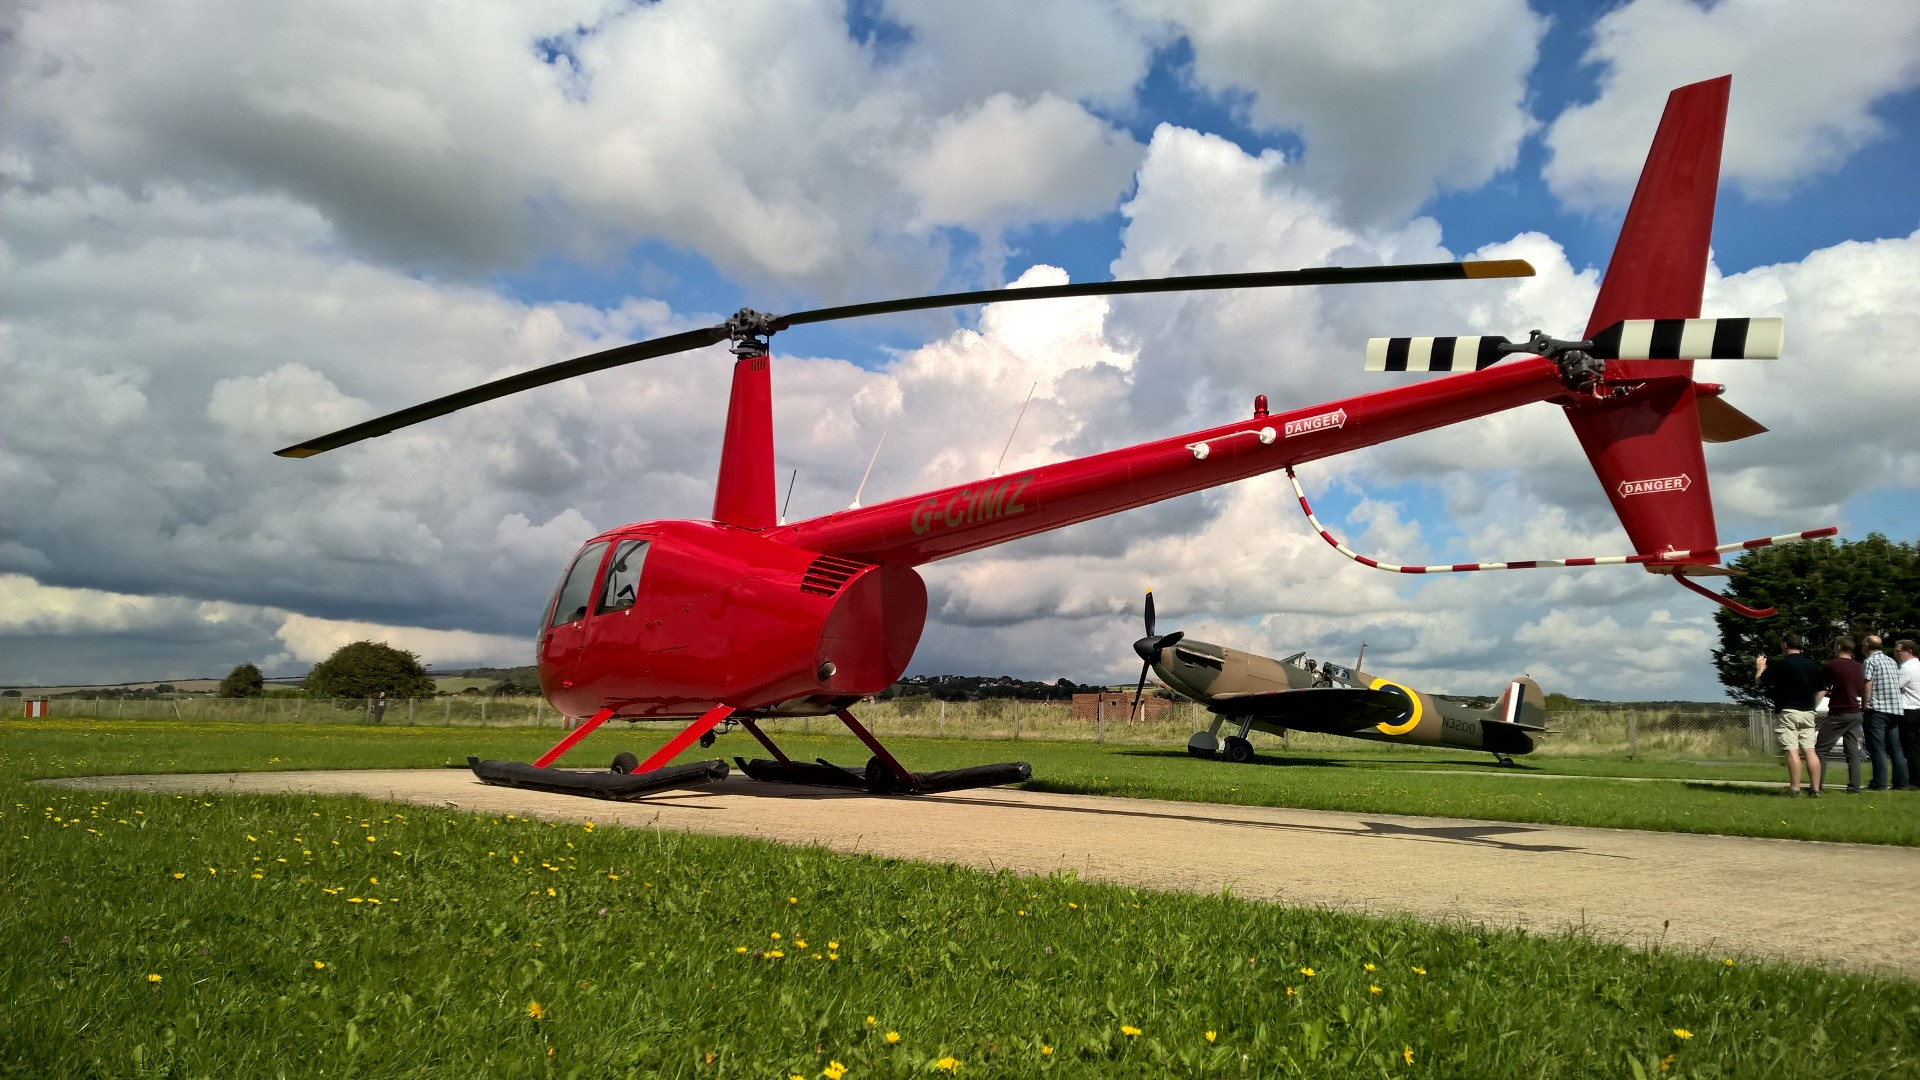 Buy Helicopter Flights | Advance Helicopters on enstrom helicopter, ocean water from helicopter, robinson helicopter, r66 helicopter, historical helicopter, world's largest russian helicopter, kiro helicopter, r12 helicopter, woman jumping from helicopter, bell helicopter,